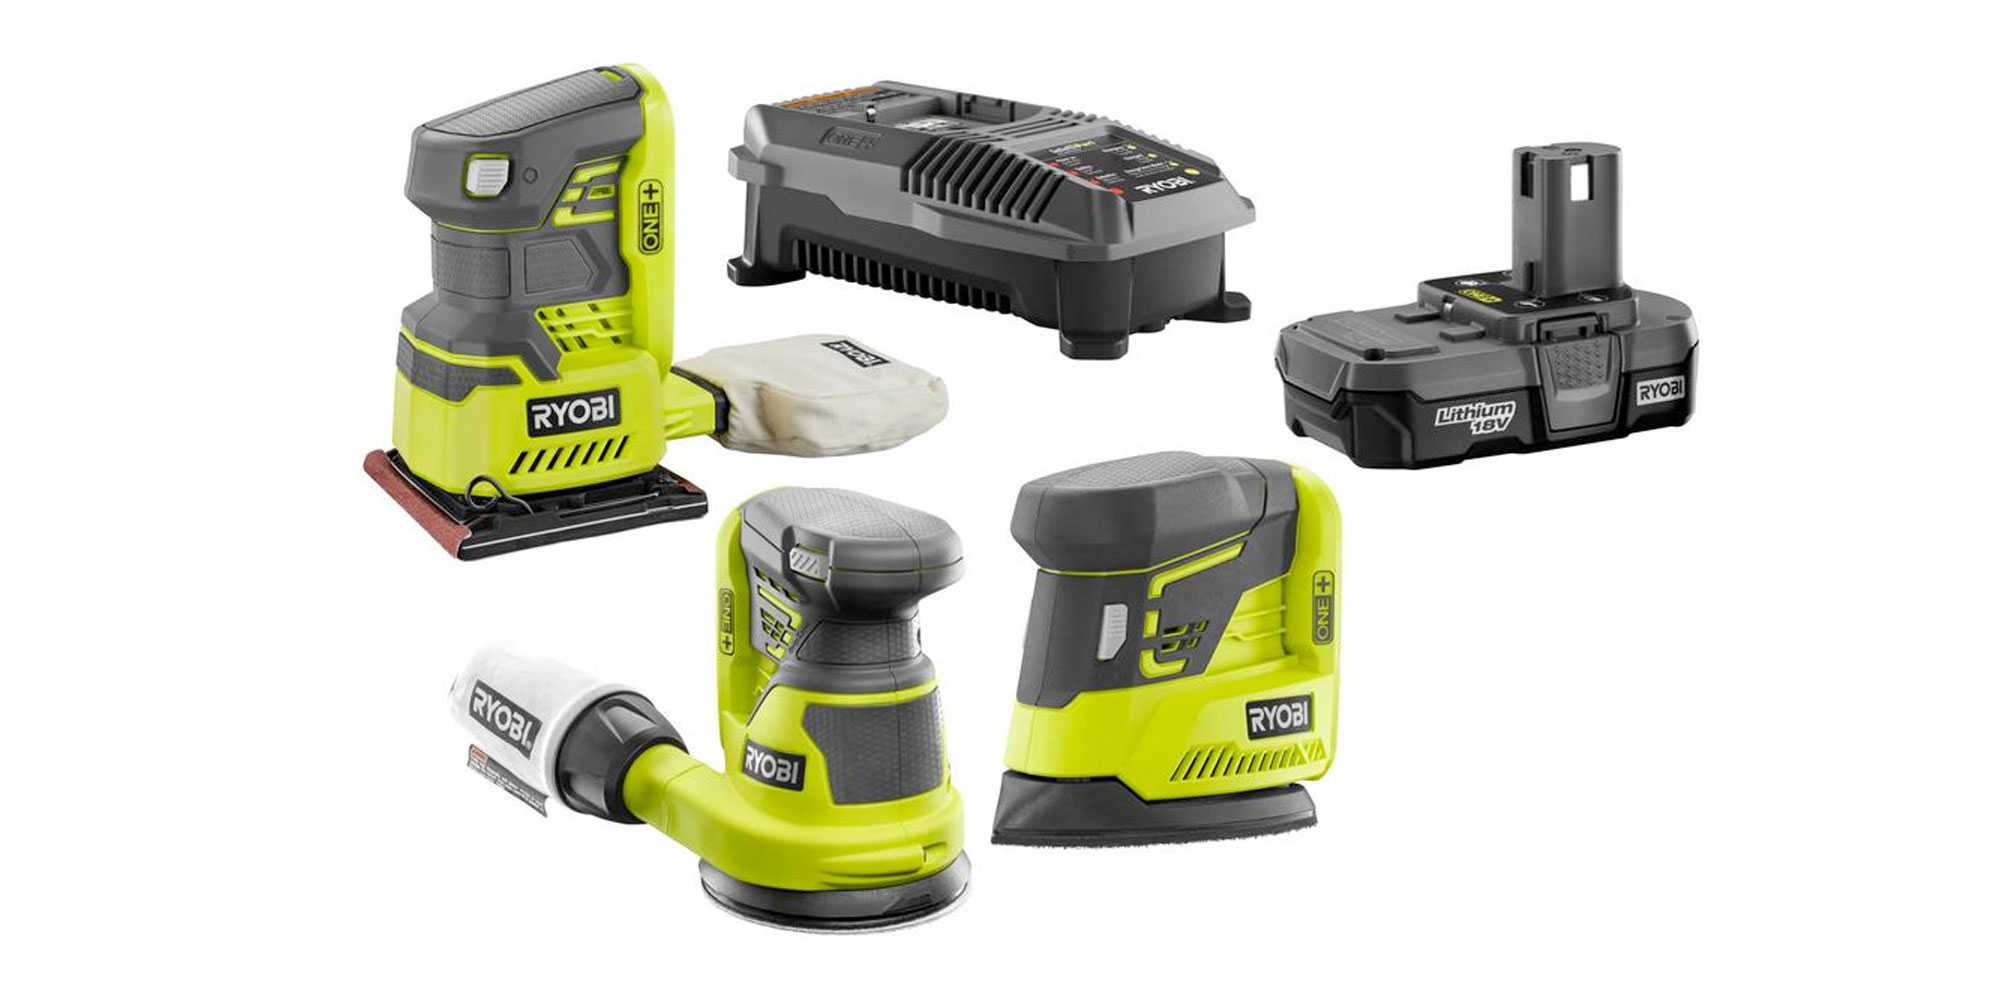 Ryobi's 5-piece sander kit is perfect for weekend warrior DIYers this spring at $99 (Reg. $130+)